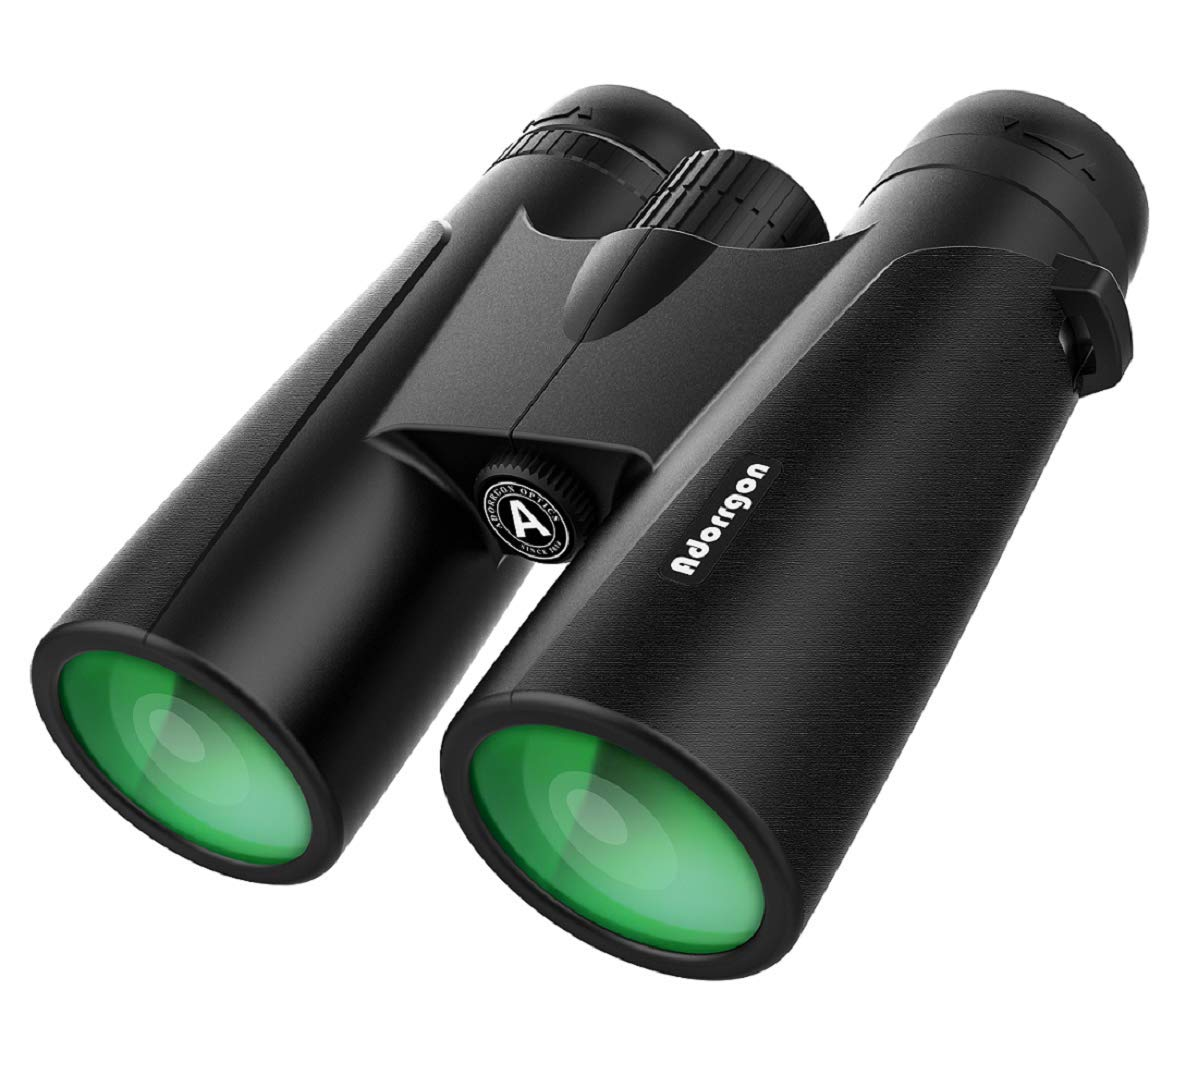 12x42 Roof Prism Binoculars for Adults - Professional HD Binoculars for Birds Watching Hunting Concerts with Clear Weak Light Vision - BAK4 Prism FMC Lens with Strap Carrying Bag (1.1 pounds) by Adorrgon